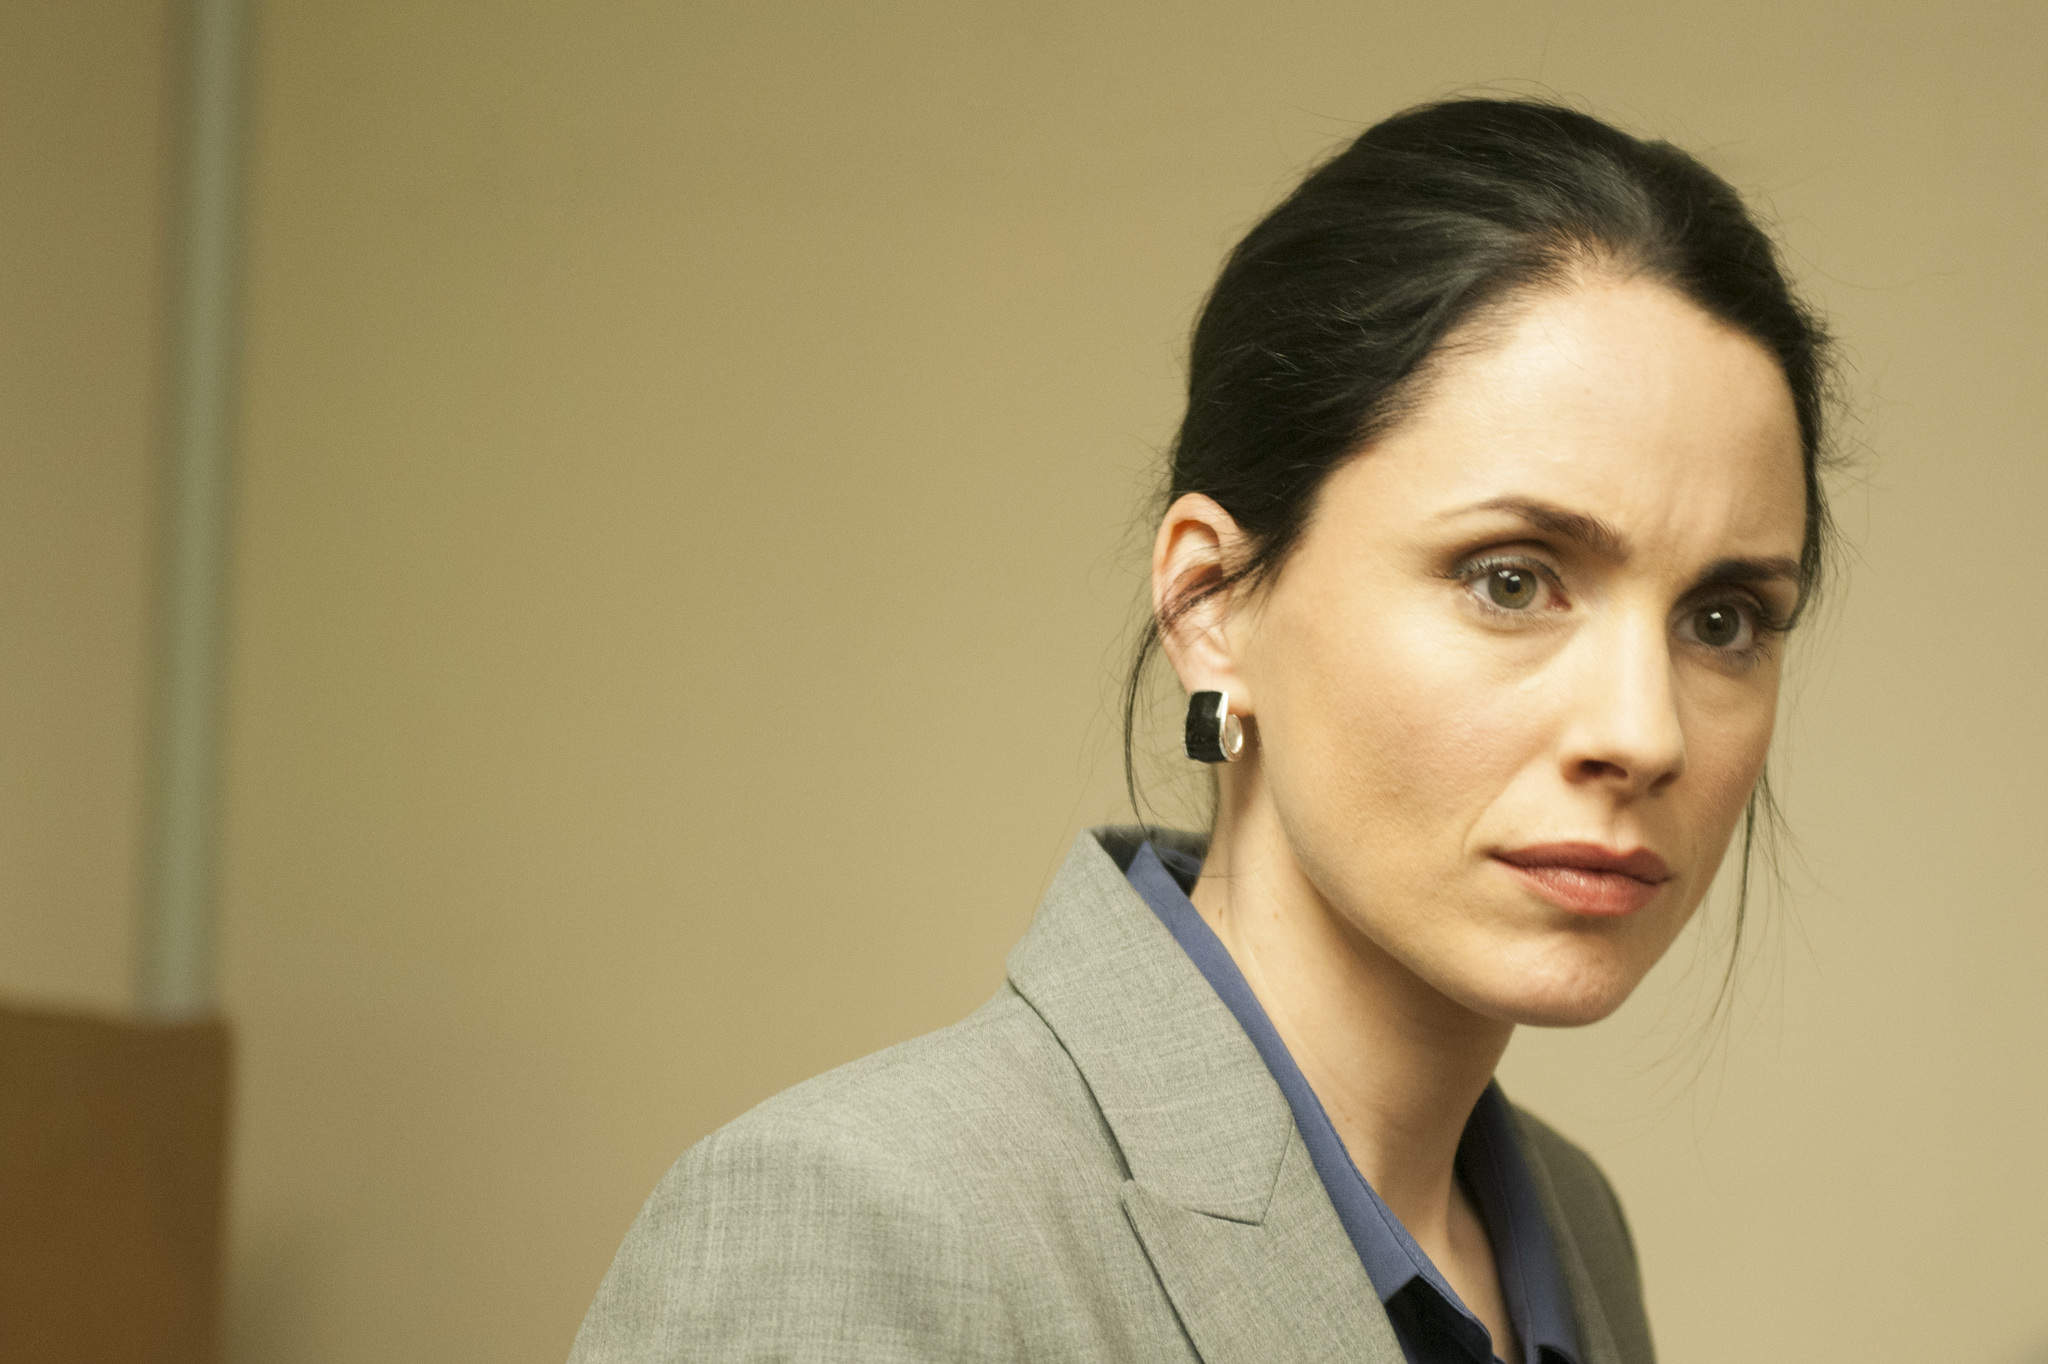 2048x1364 - Laura Fraser Wallpapers 1